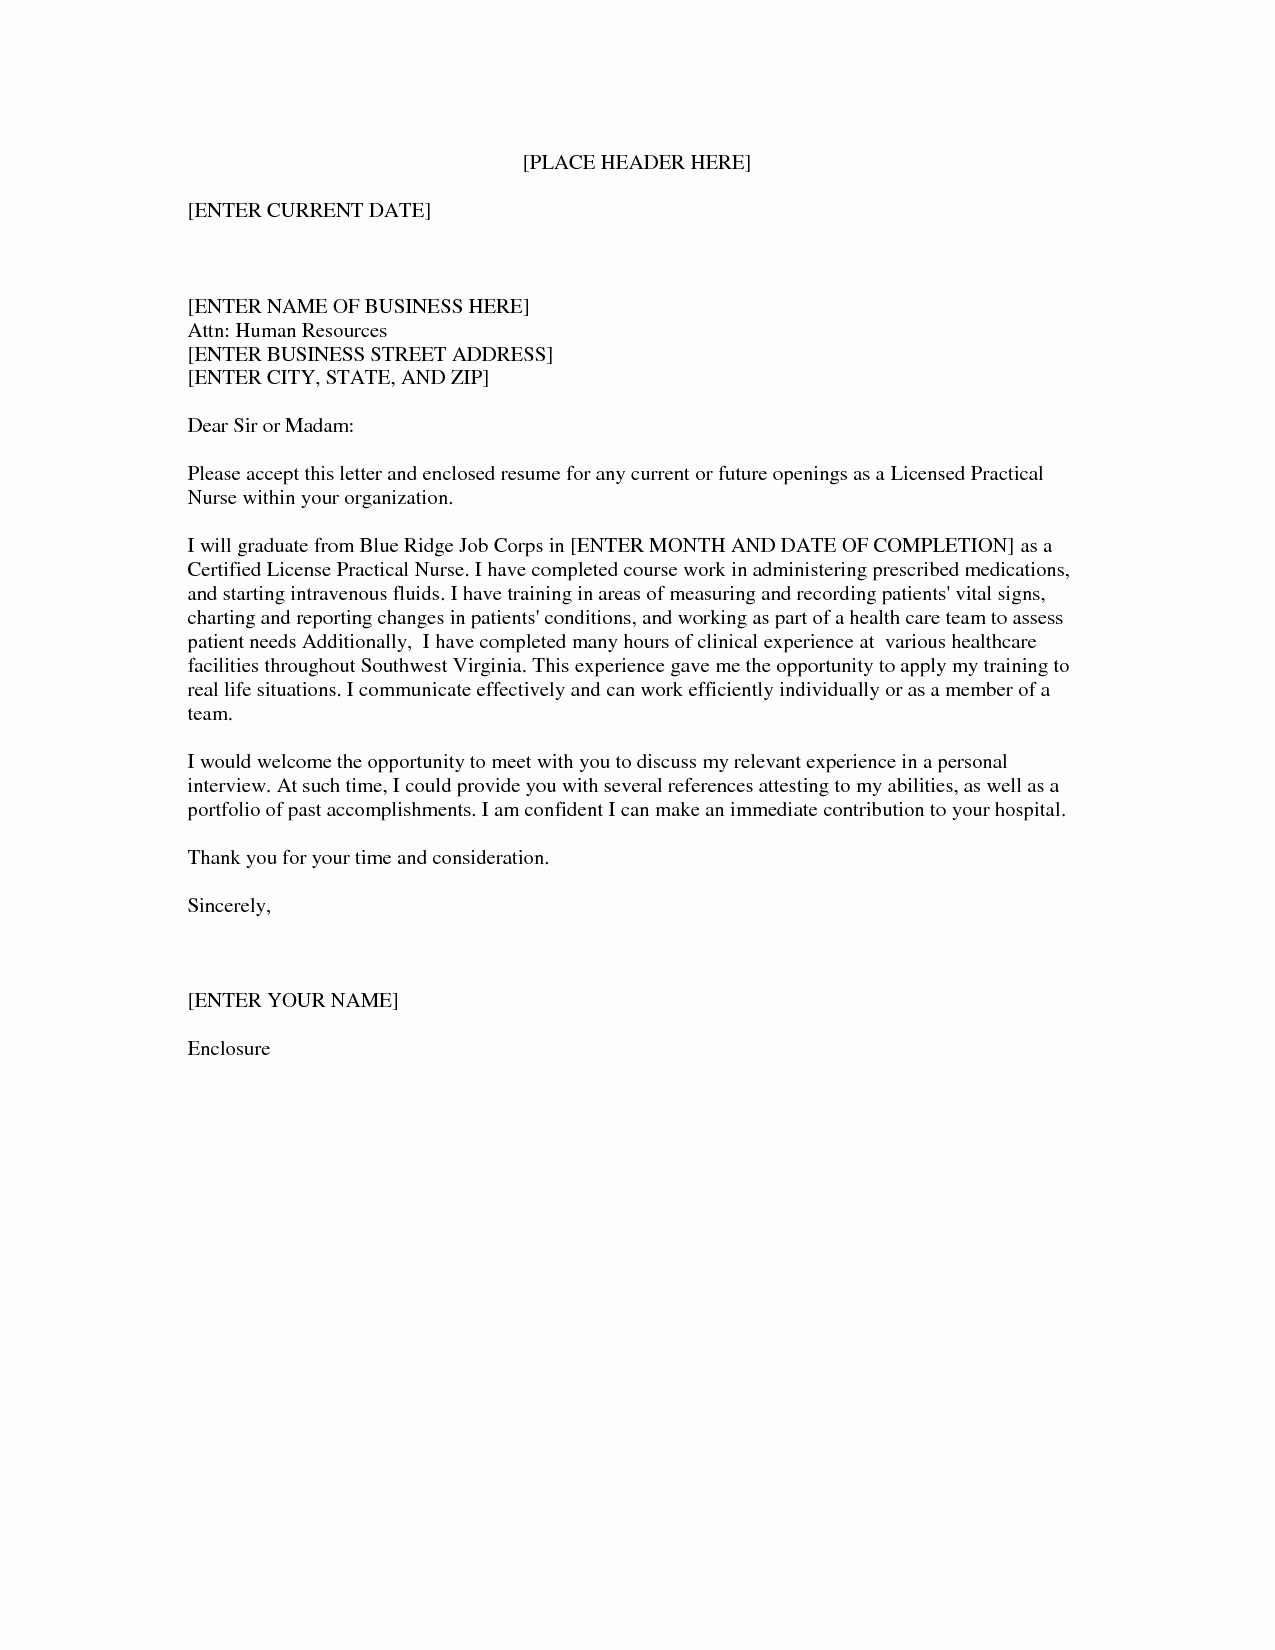 Sample Cover Letters for Nursing Best Of Lpn Nursing Cover Letter Sample